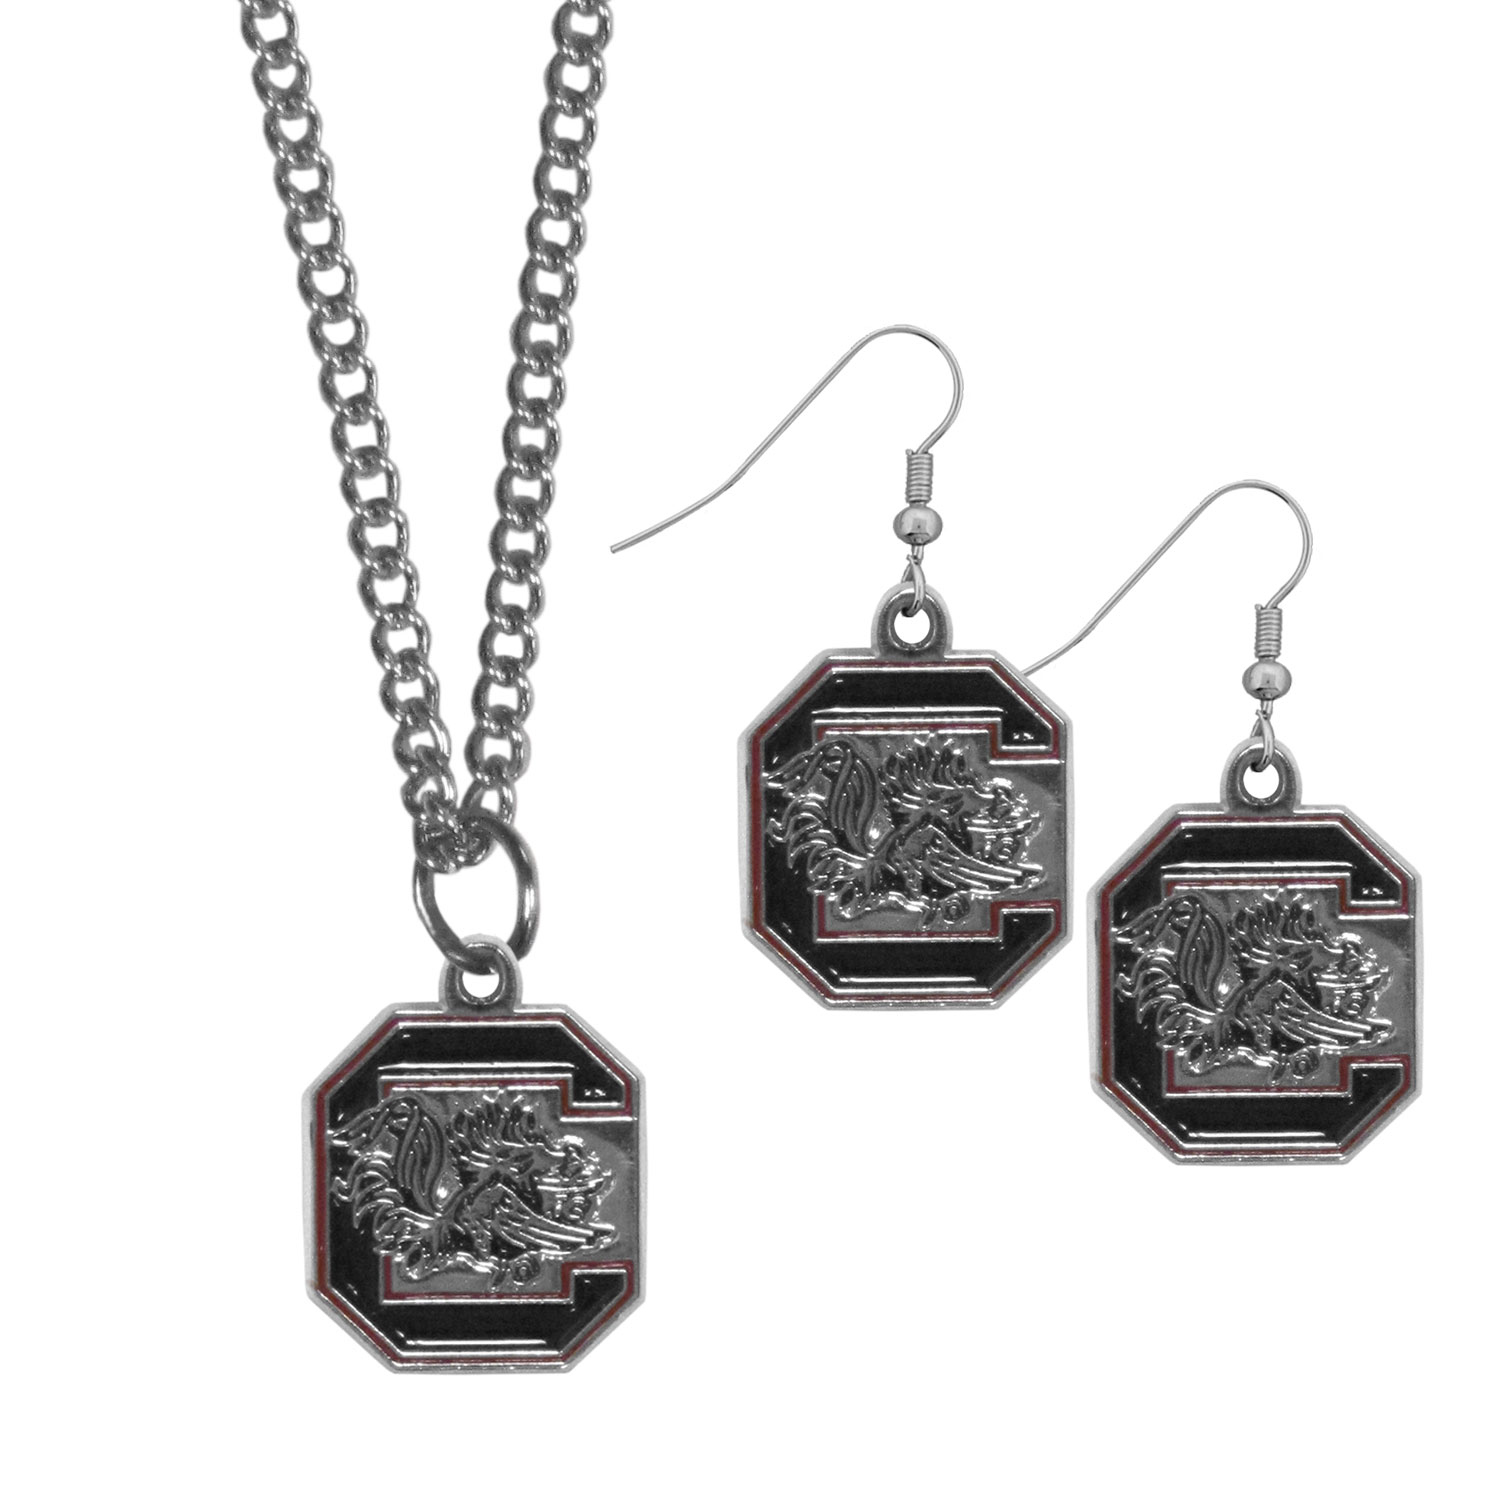 S. Carolina Gamecocks Dangle Earrings and Chain Necklace Set - This classic jewelry set contains are most popular S. Carolina Gamecocks dangle earrings and 22 inch chain necklace. The trendy, dangle earrings are lightweight and feature a fully cast metal team charm with enameled team colors. The matching necklace completes this fashion forward combo and is a spirited set that is perfect for game day but nice enough for everyday.